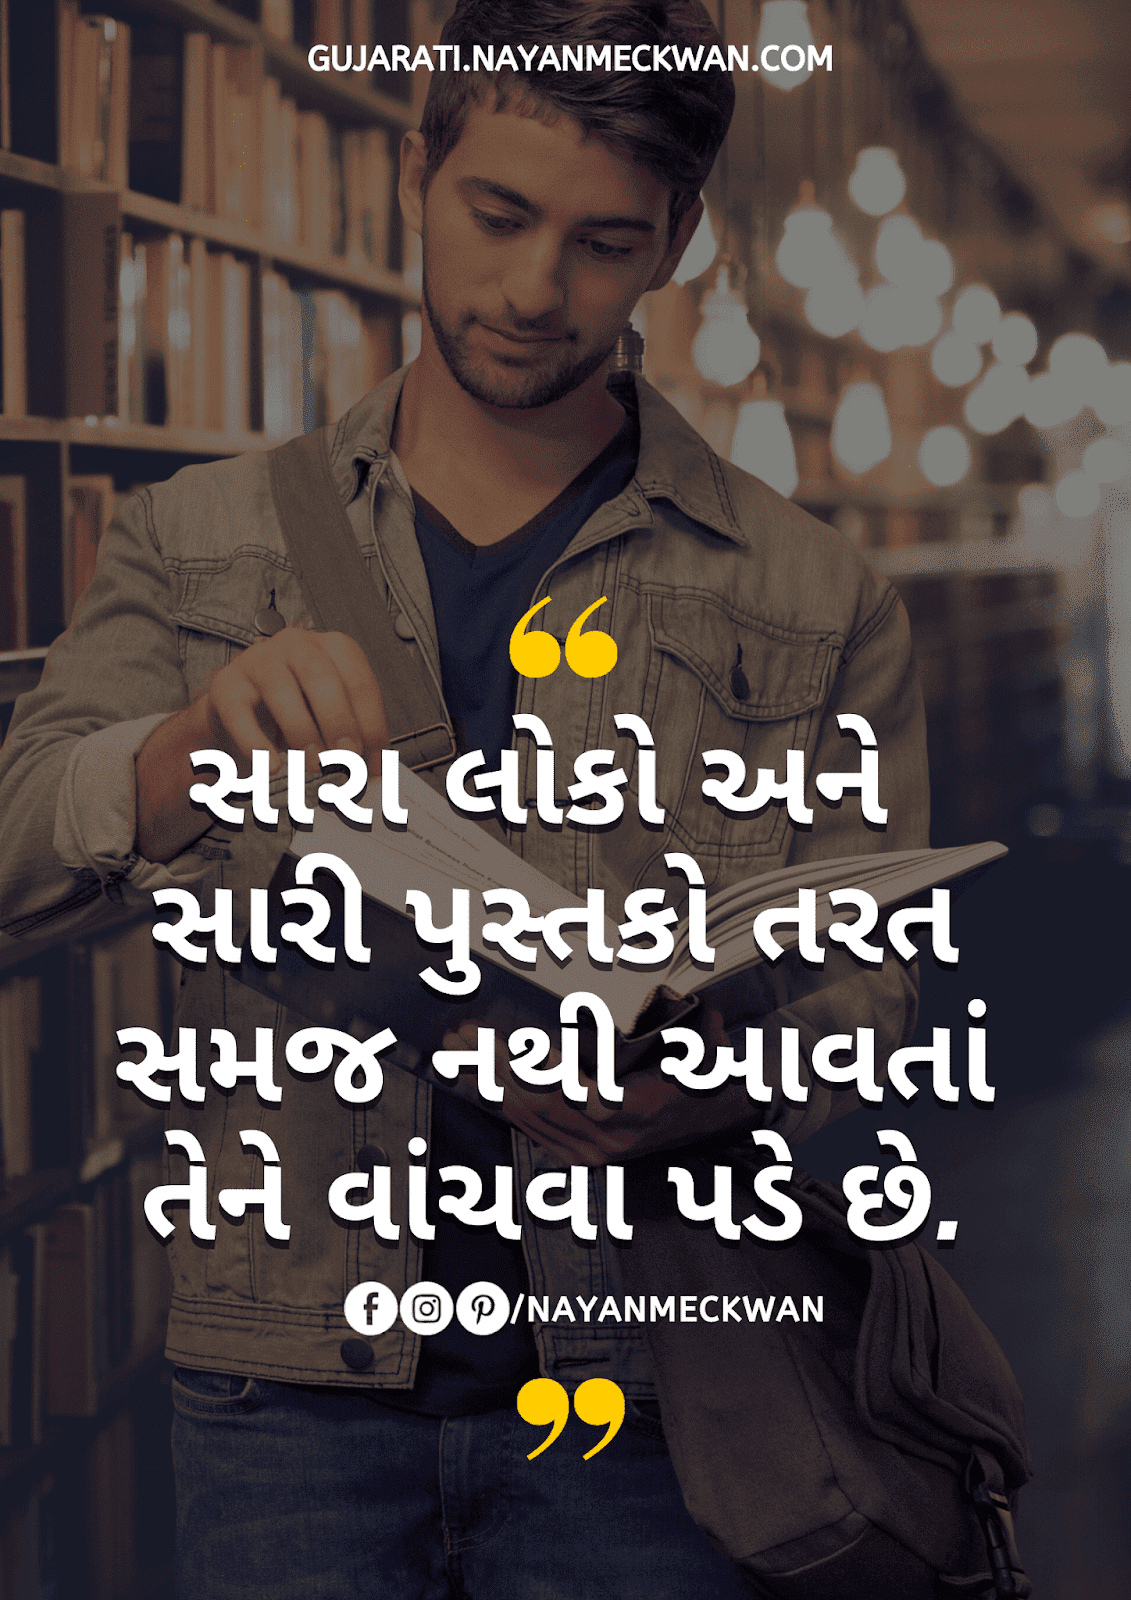 Best Gujarati inspiring motivational quotes સ્ટેટ્સ ફોટો 2020